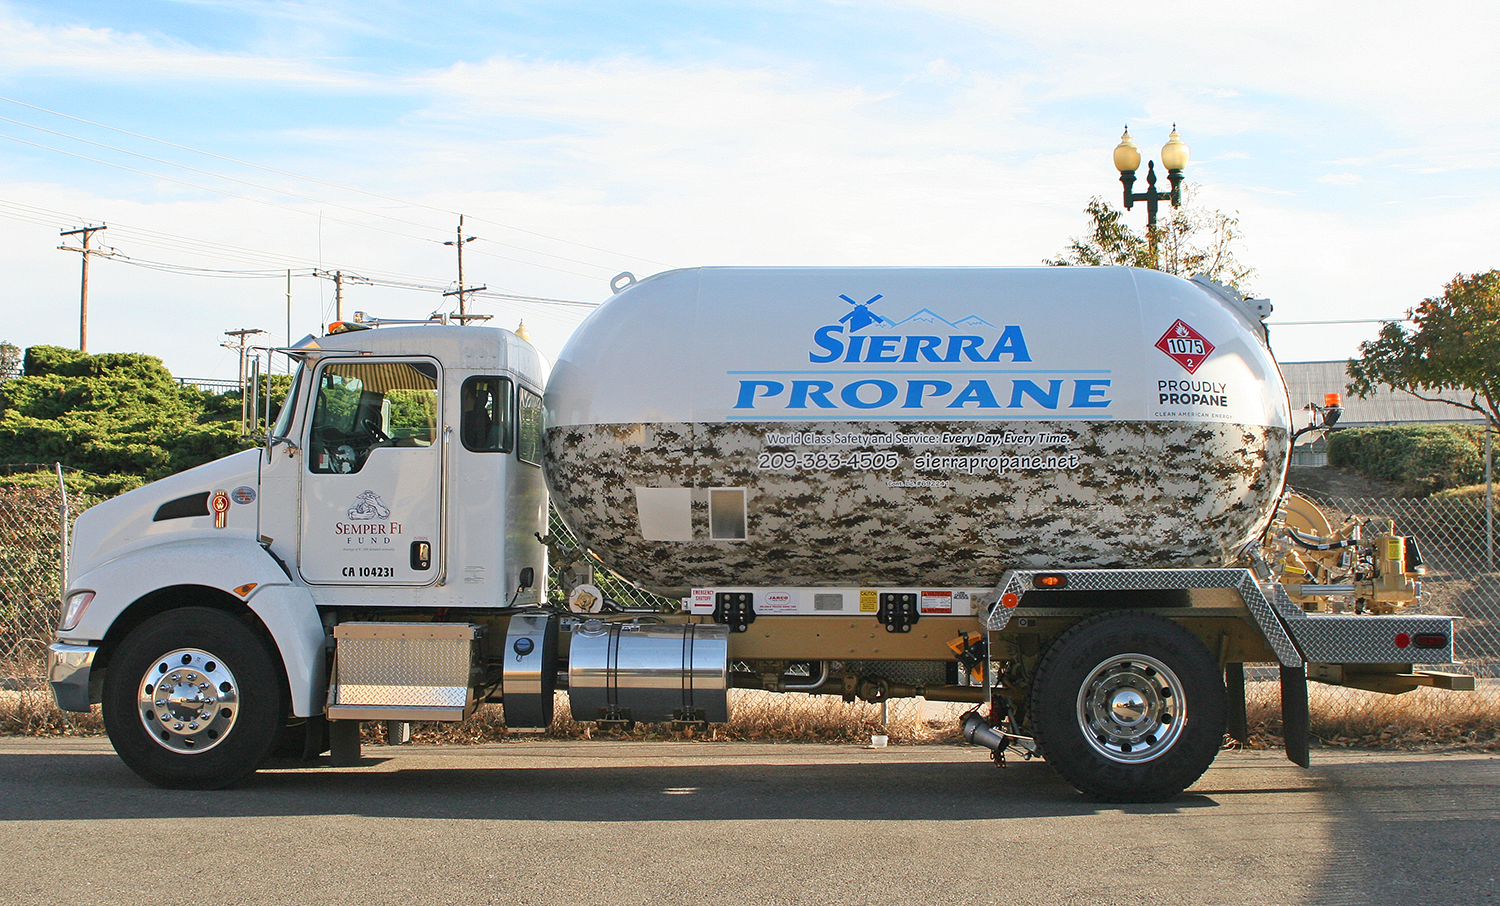 Sierra propane semper fi fund tanker wrap visual for Semper fi fund rating